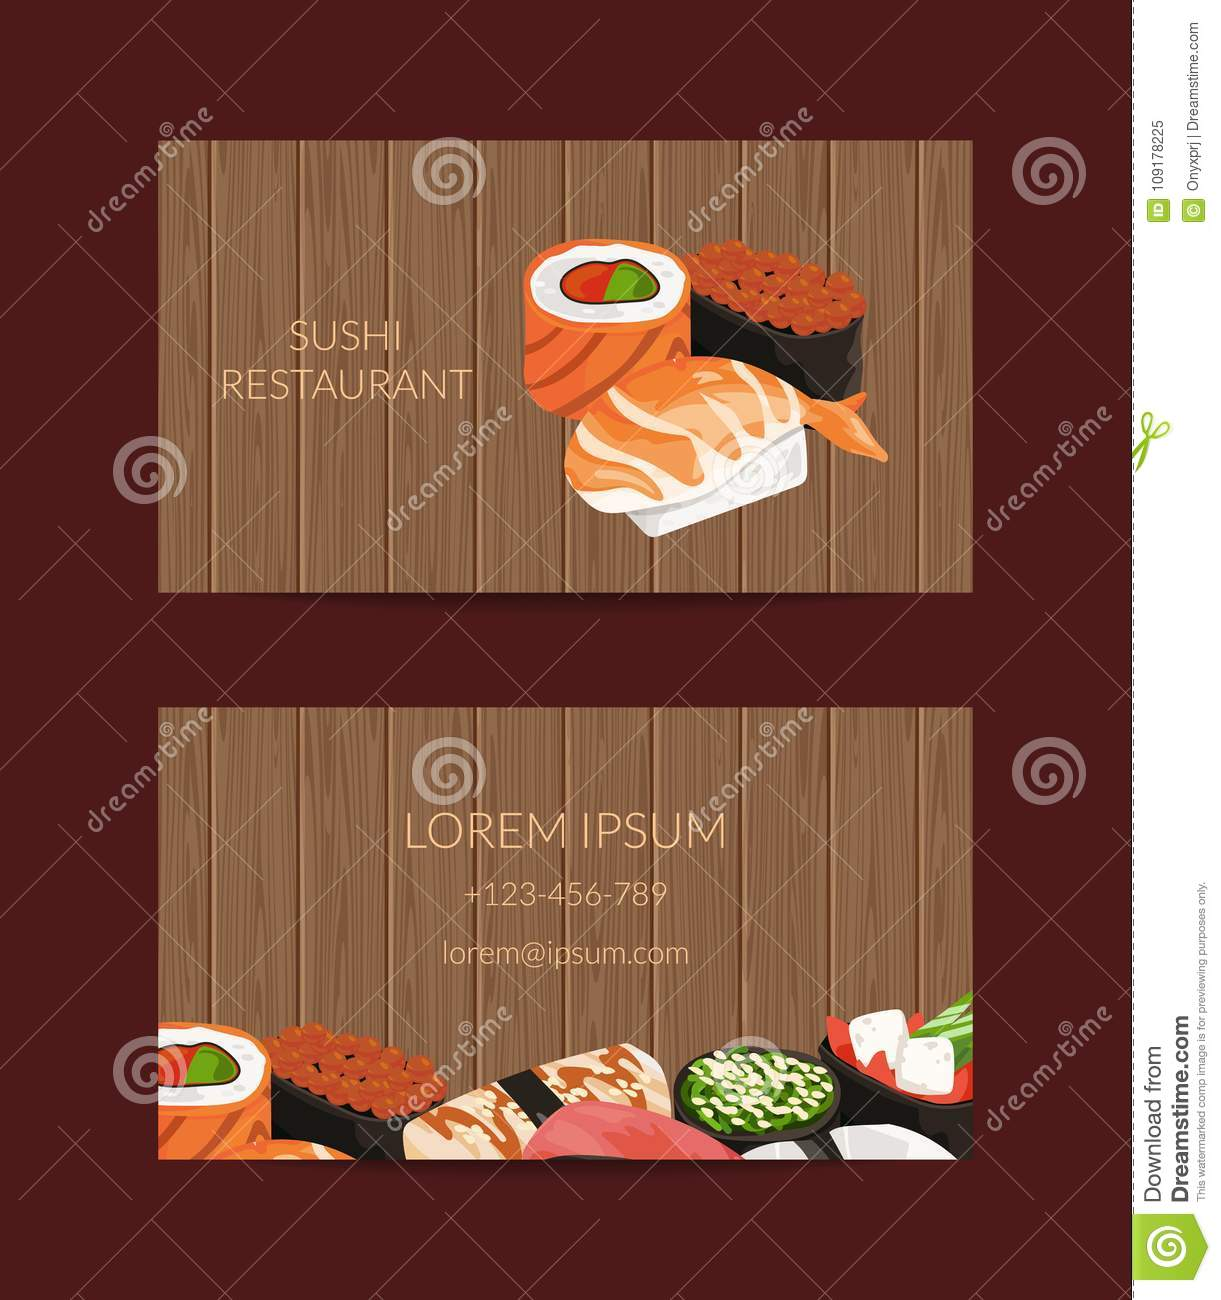 Vector Business Card Templates In Cartoon Style For Sushi Restaurant Or Cooking Lessons With Wooden Texture Background Stock Vector Illustration Of Japan Japanese 109178225